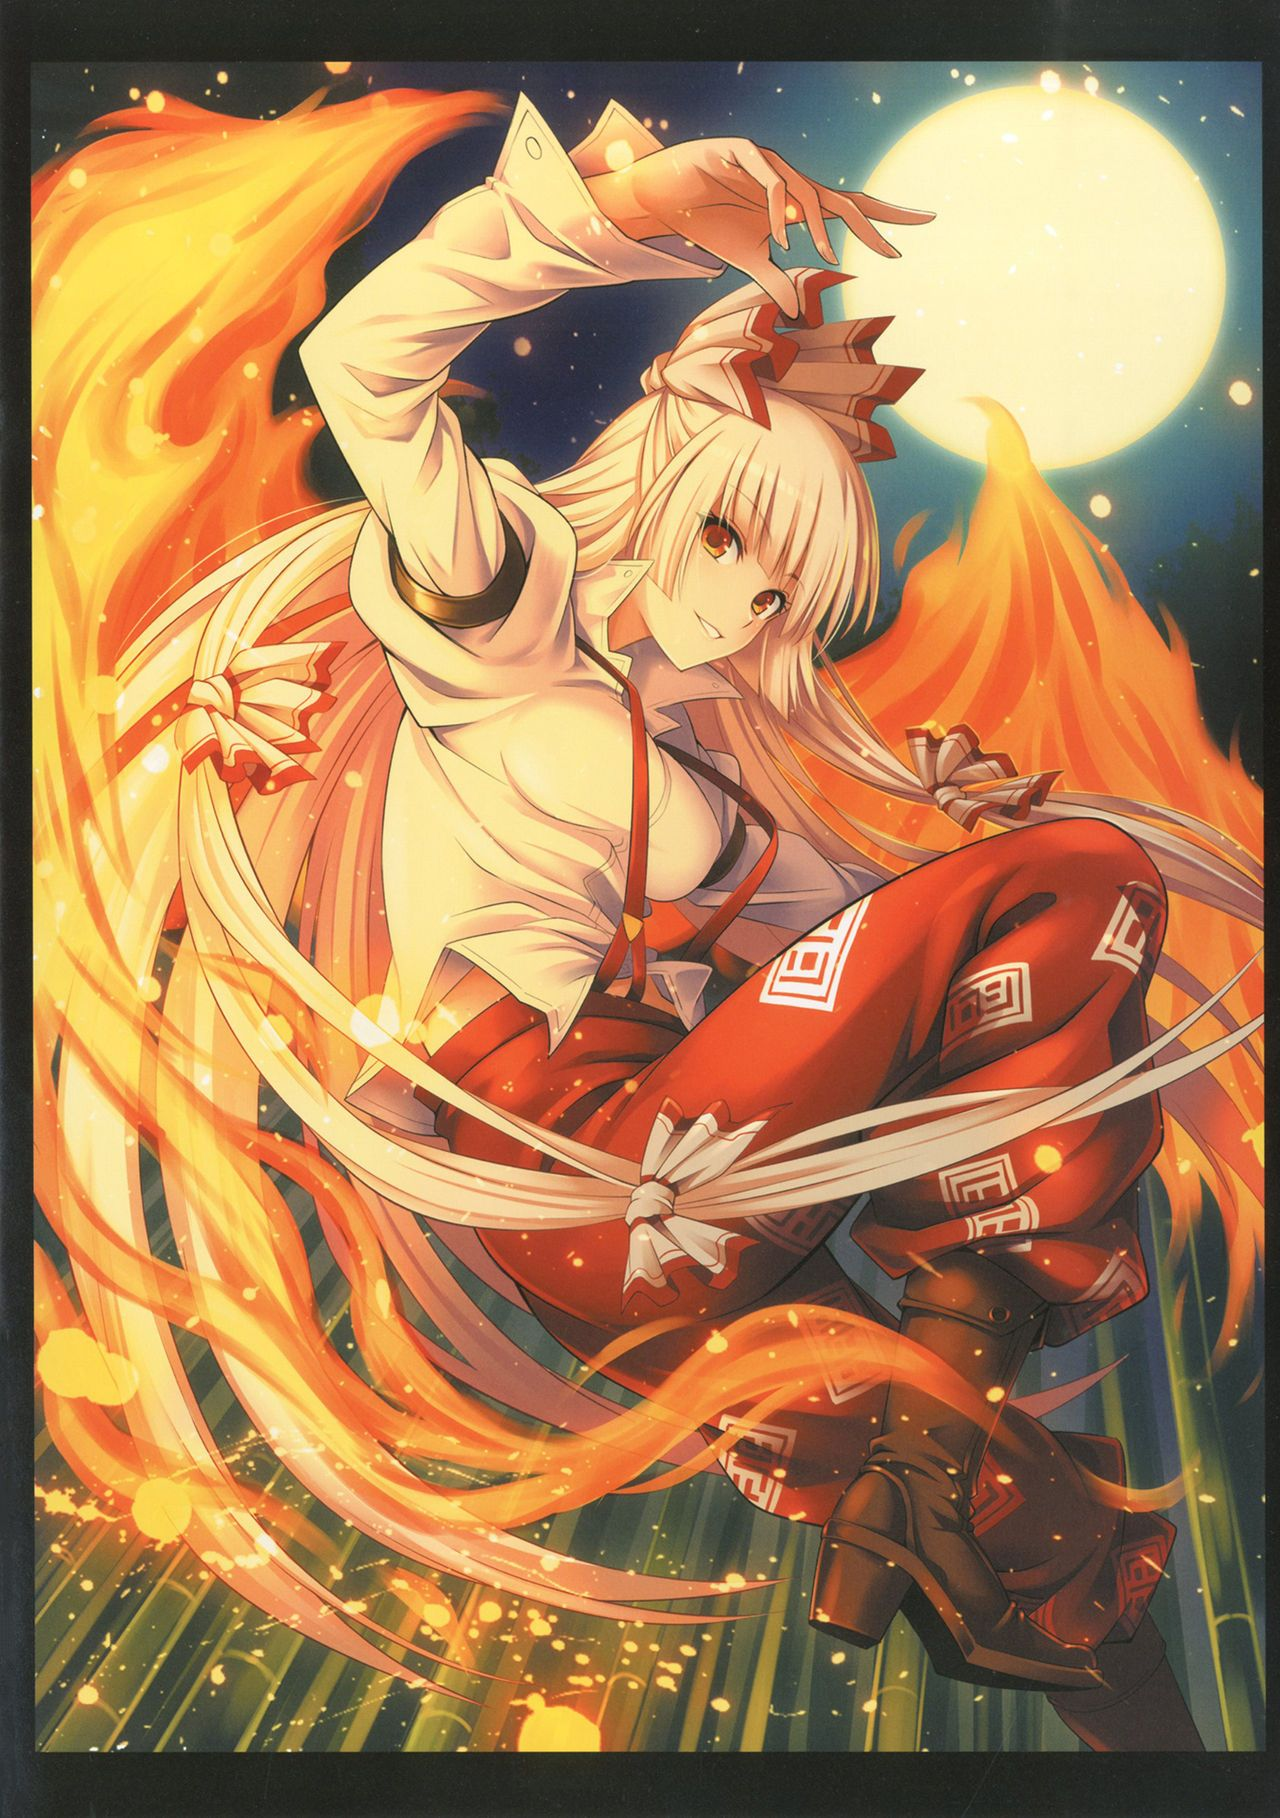 fujiwara no mokou touhou project 東方project おしゃれまとめの人気アイデア pinterest anthony canel 東方 かわいい 壁紙 東方 東方 壁紙